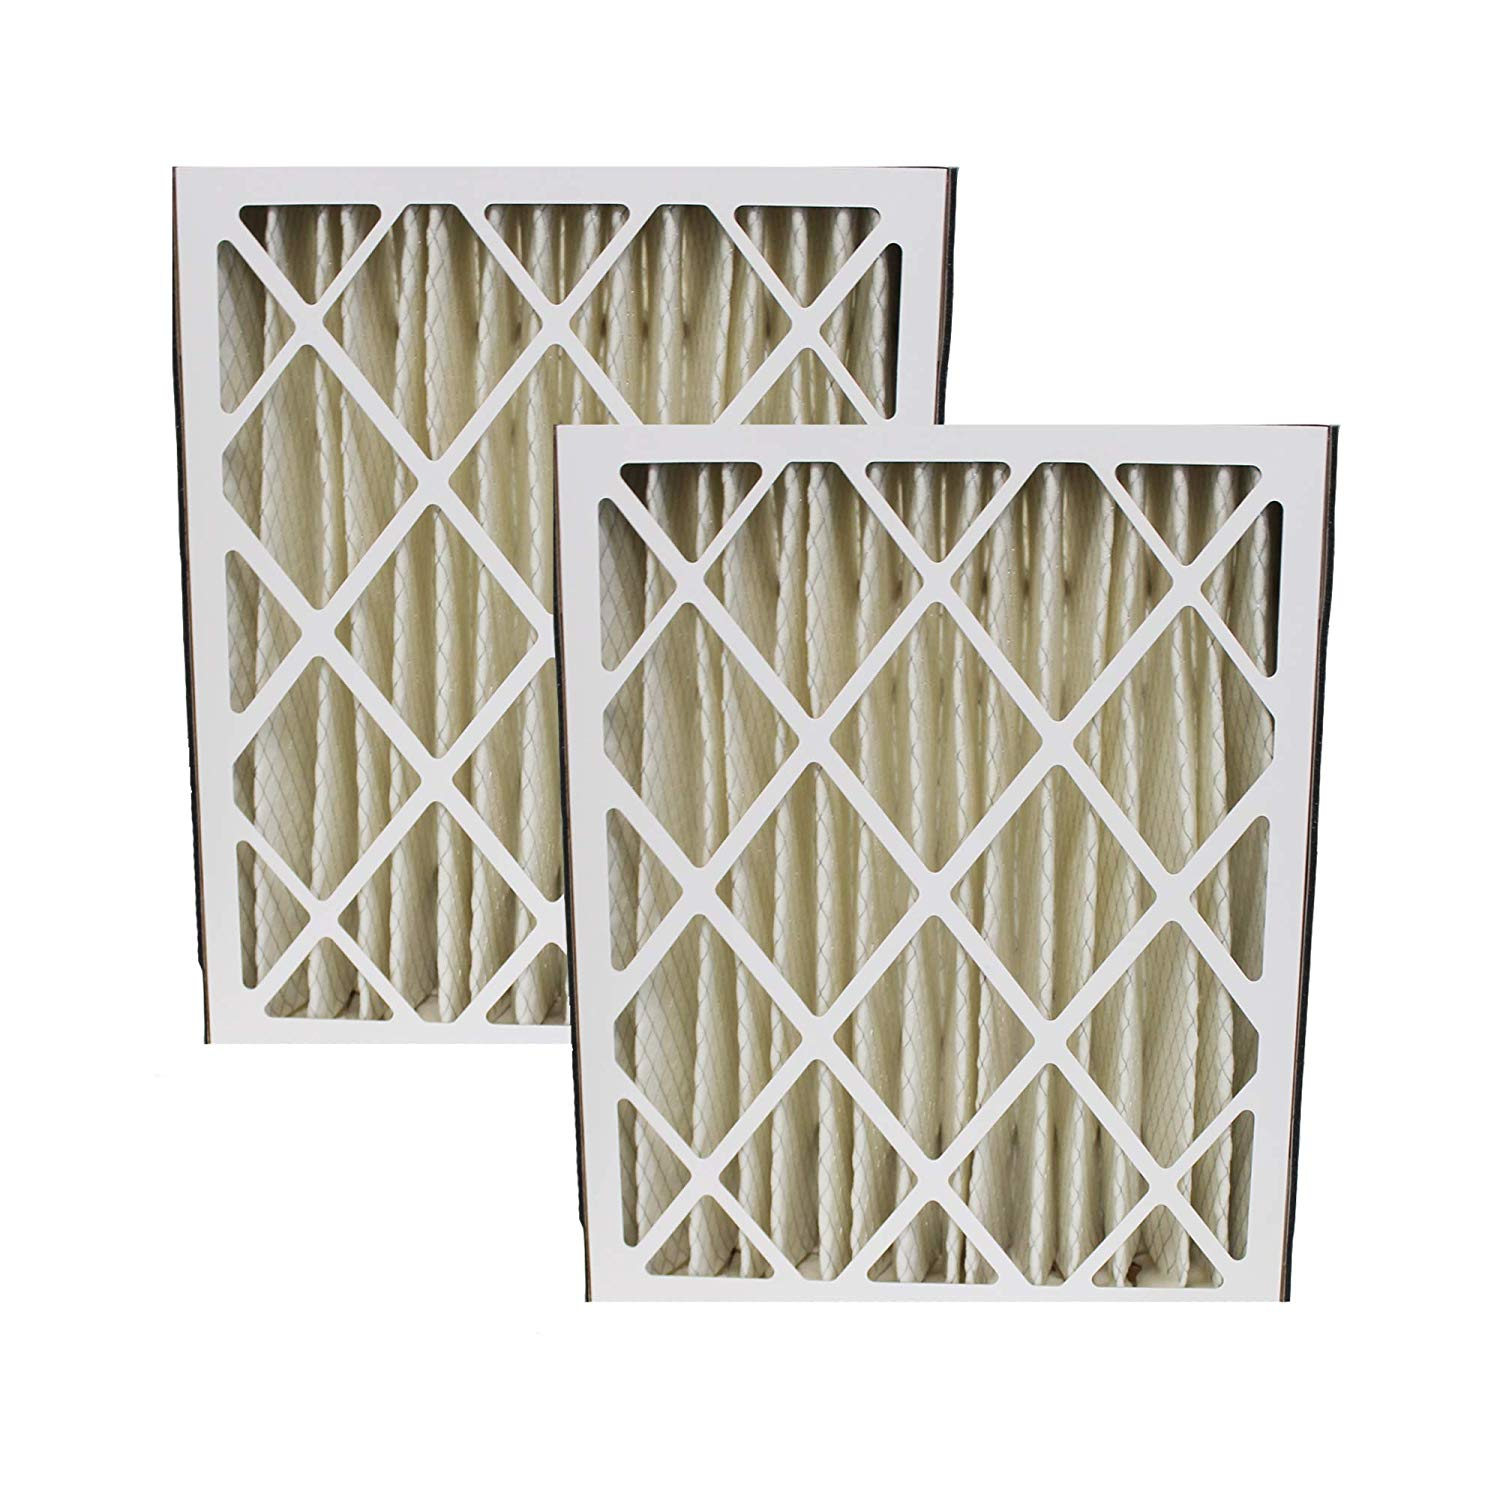 Think Crucial 2 Replacements for Trion Air Bear 20x25x5 Pleated Furnace Air Filter Fits 255649-102, MERV 8